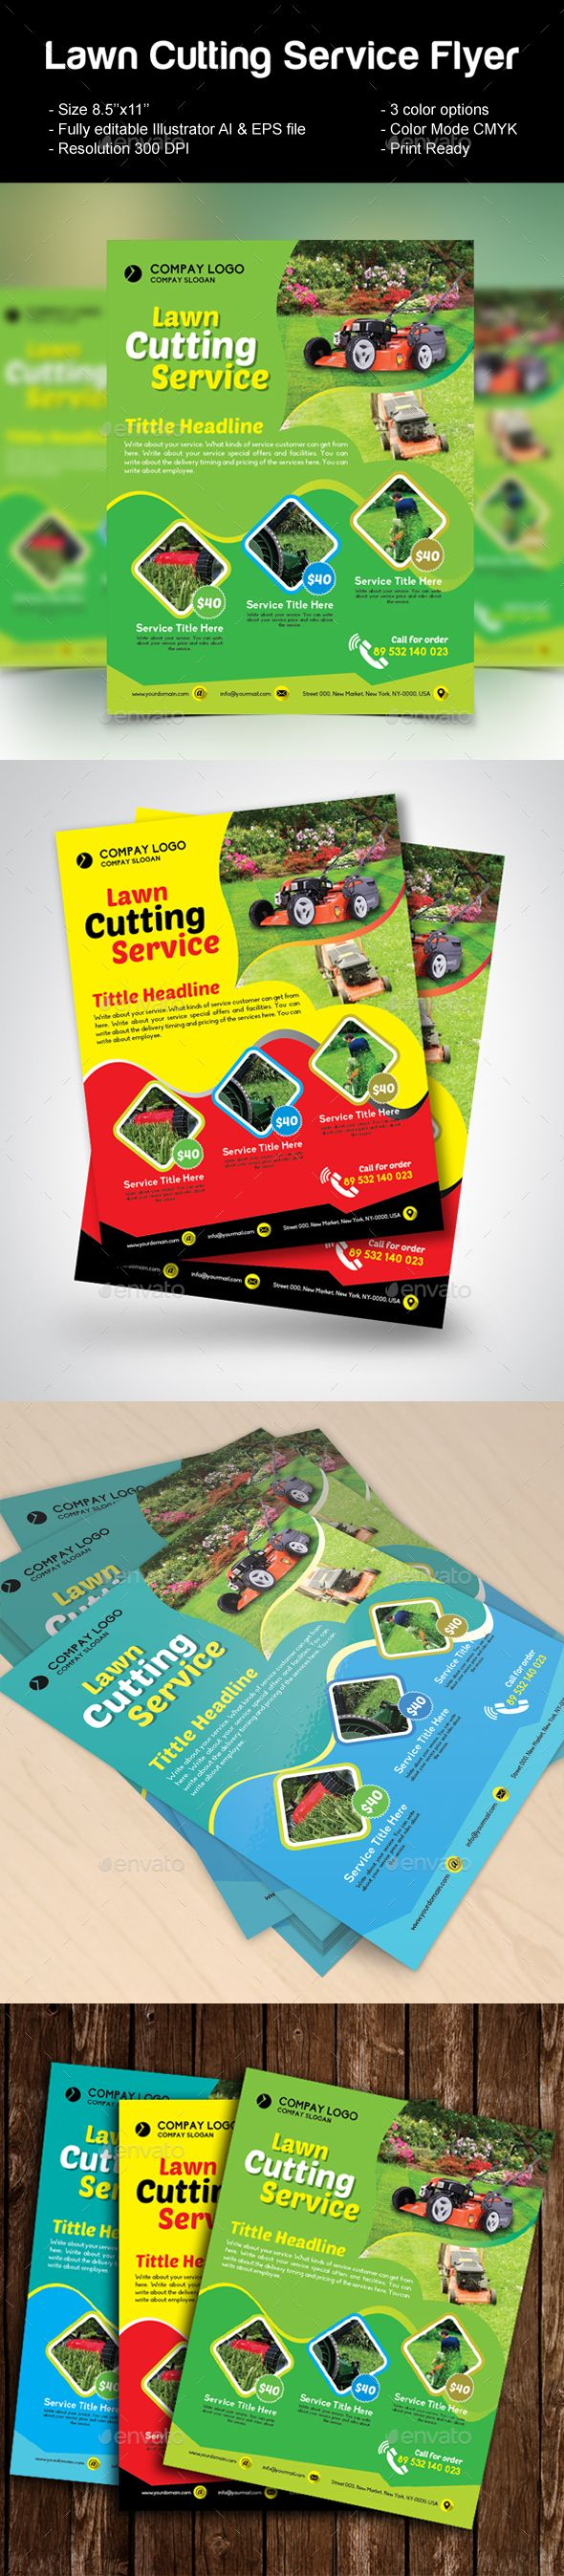 Lawn Cutting Service Flyer — Vector EPS #landscape #spring • Available here → https://graphicriver.net/item/lawn-cutting-service-flyer/16456292?ref=pxcr